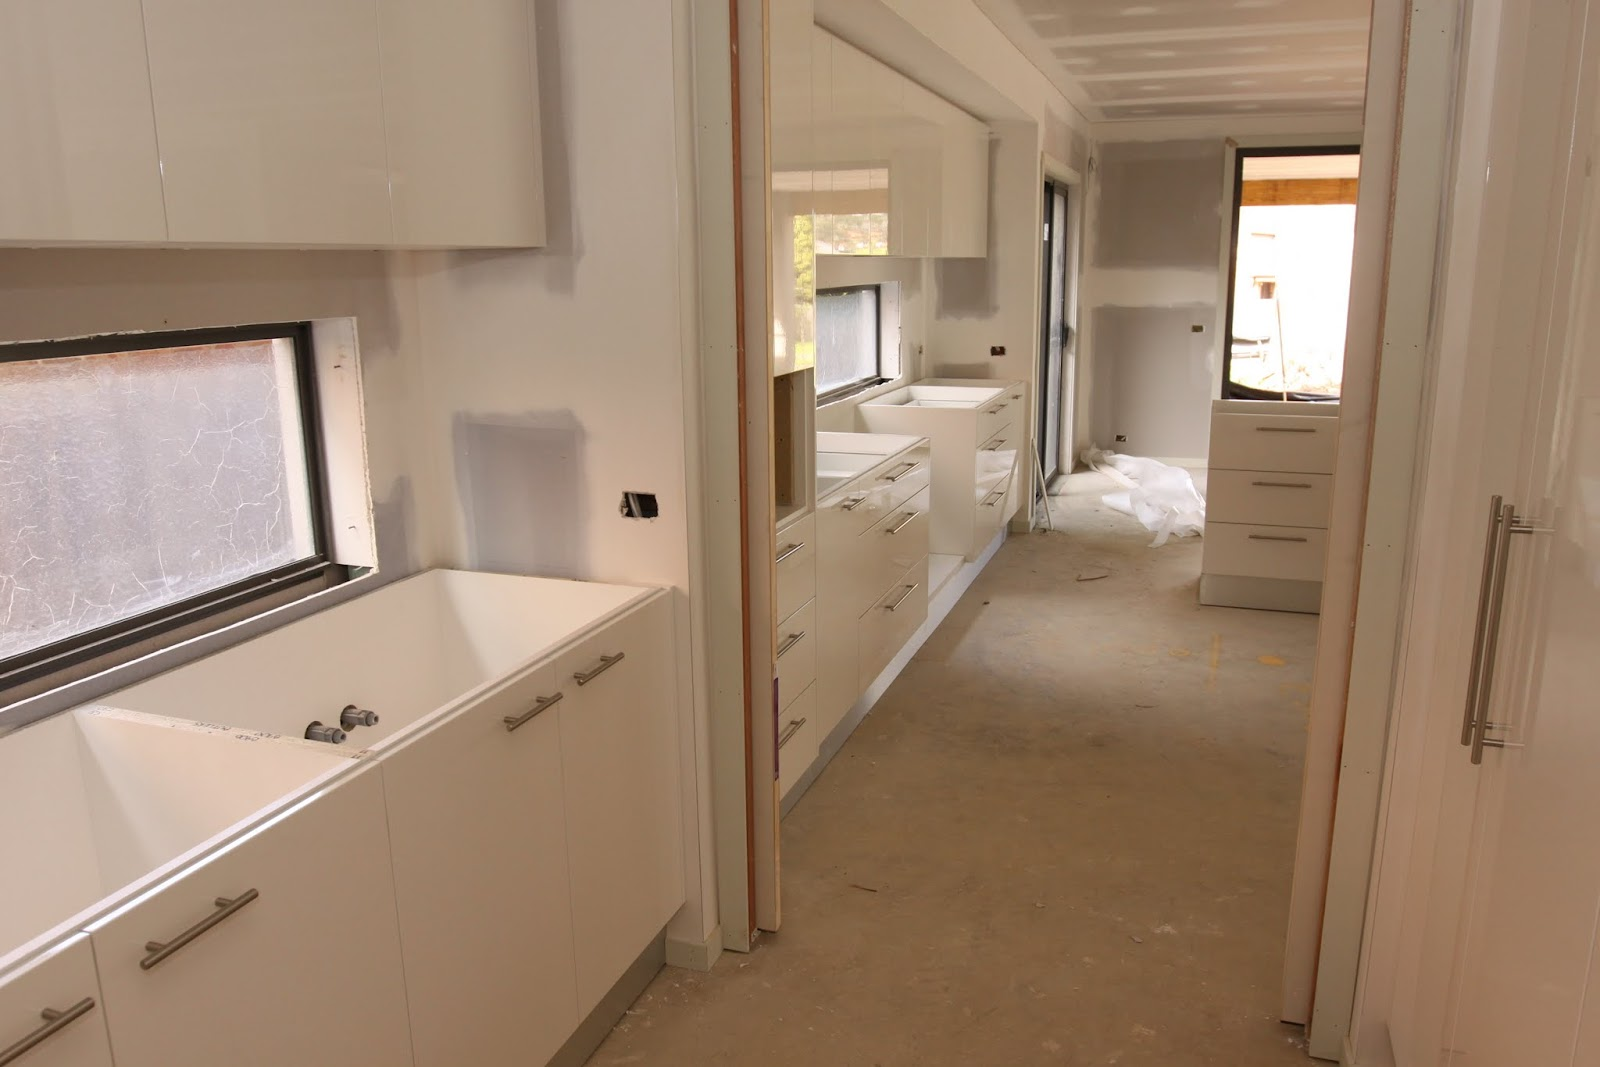 Our metricon nolan 41 journey kitchen and vanity cabinetry - Our Metricon Nolan 41 Journey Kitchen And Vanity Cabinetry Installation Started